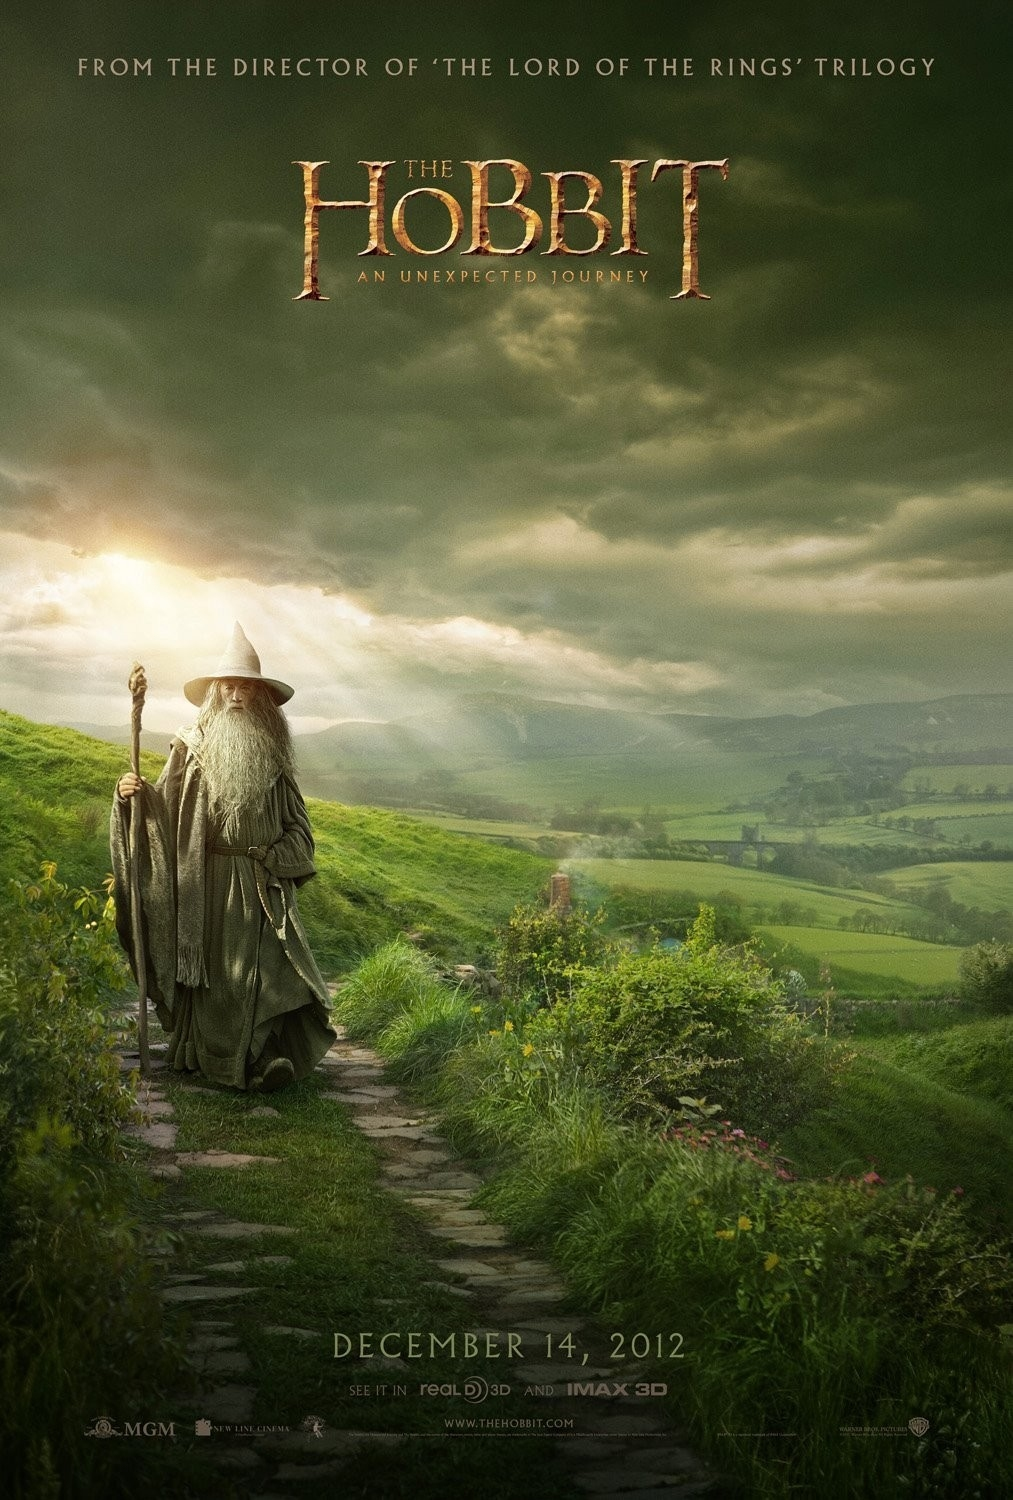 The Hobbit: An Unexpected Journey - Movie Poster #1 (Original)